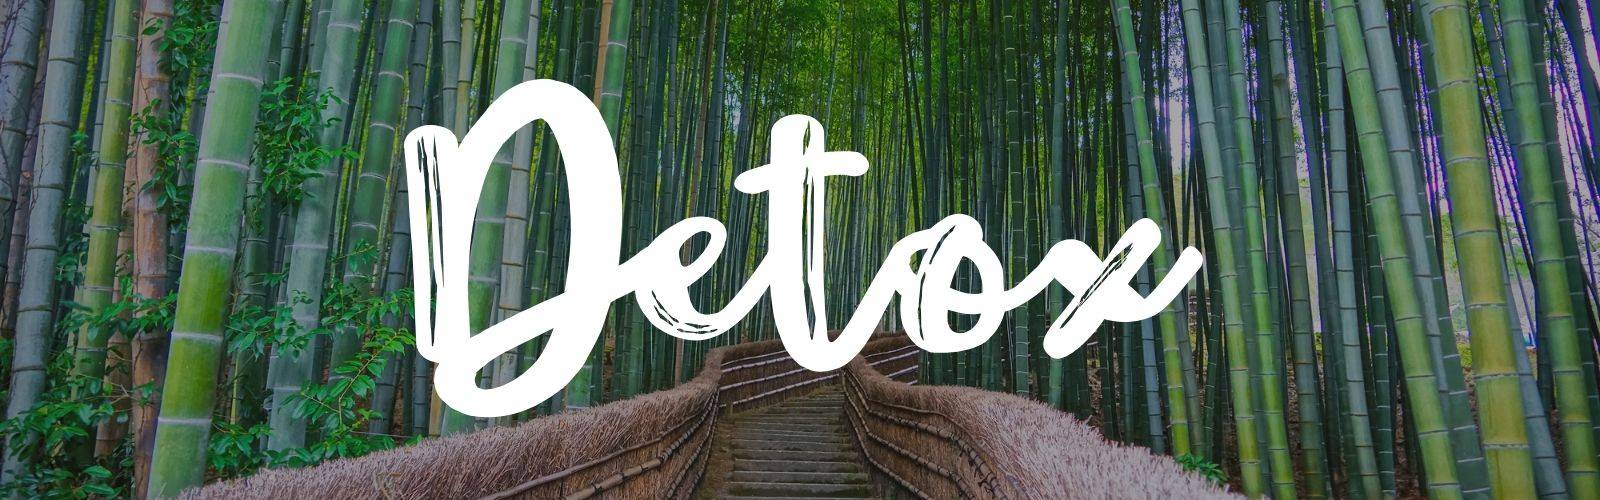 Detoxing Spa Services and Massages in Hot Springs, AR   Thai-Me Spa